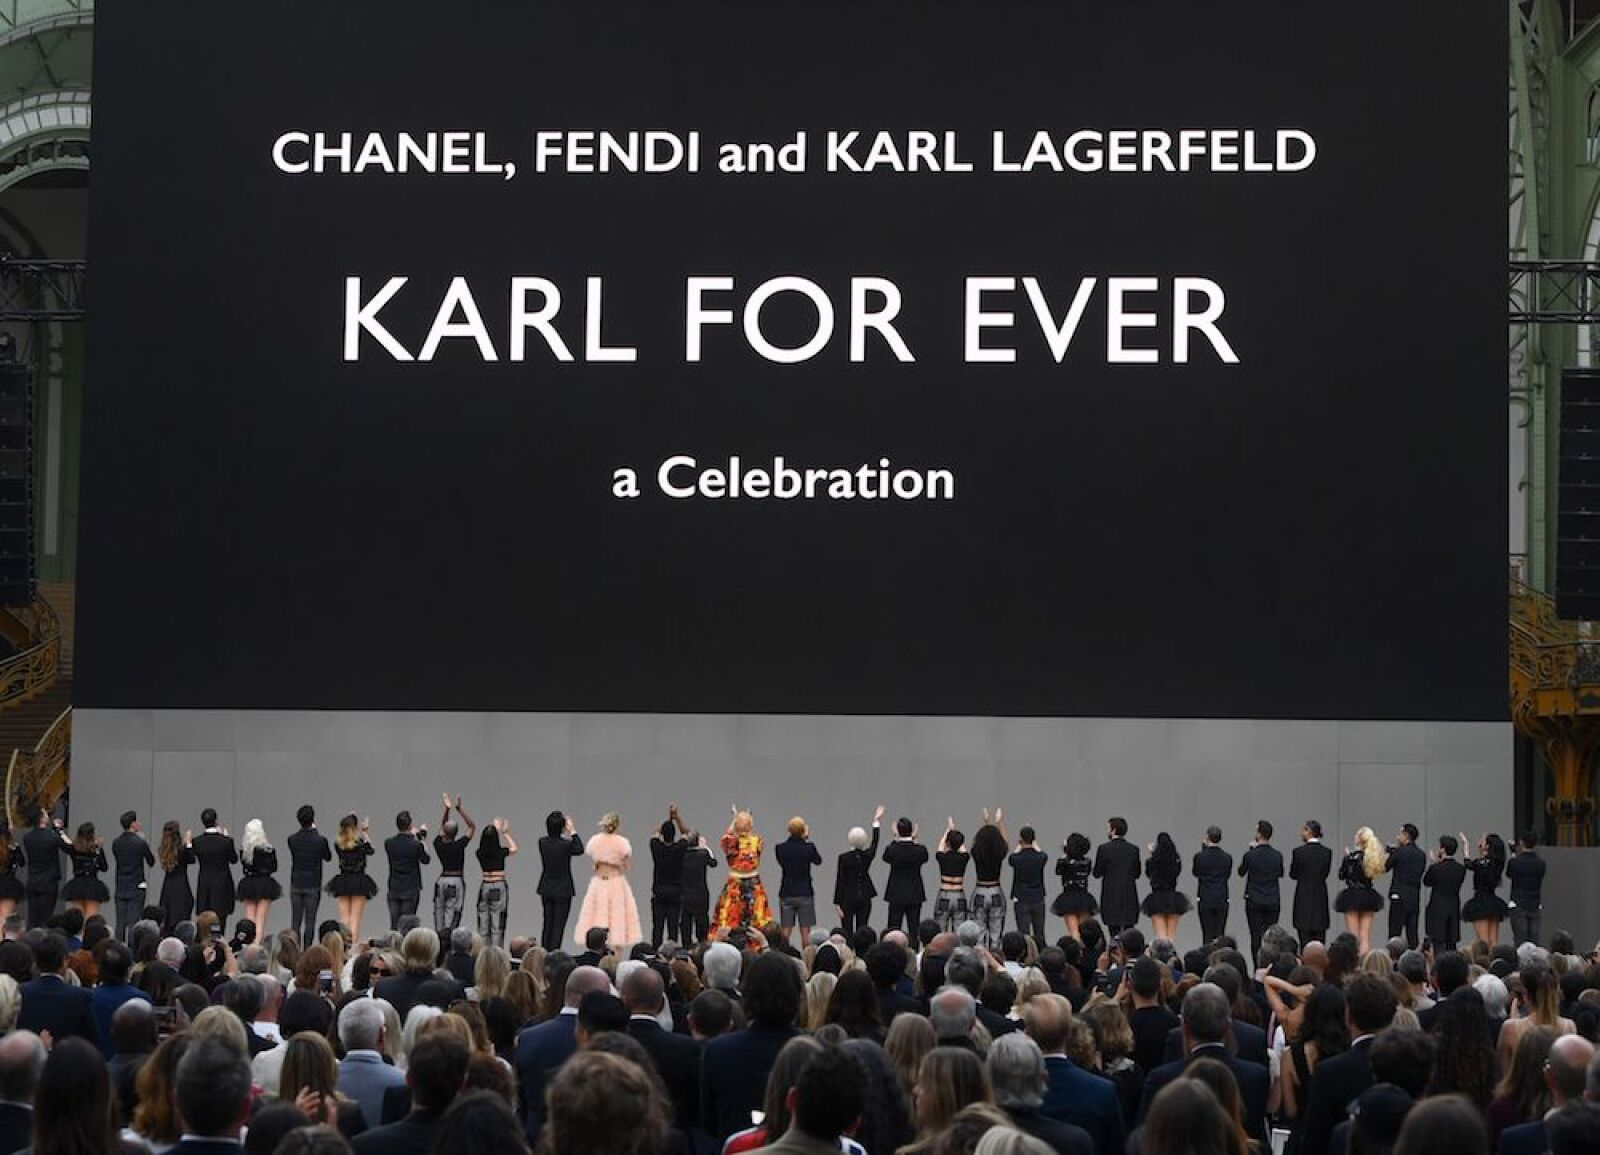 Karl For Ever memorial, Runway, Paris Fashion Week Men's, France - 20 Jun 2019